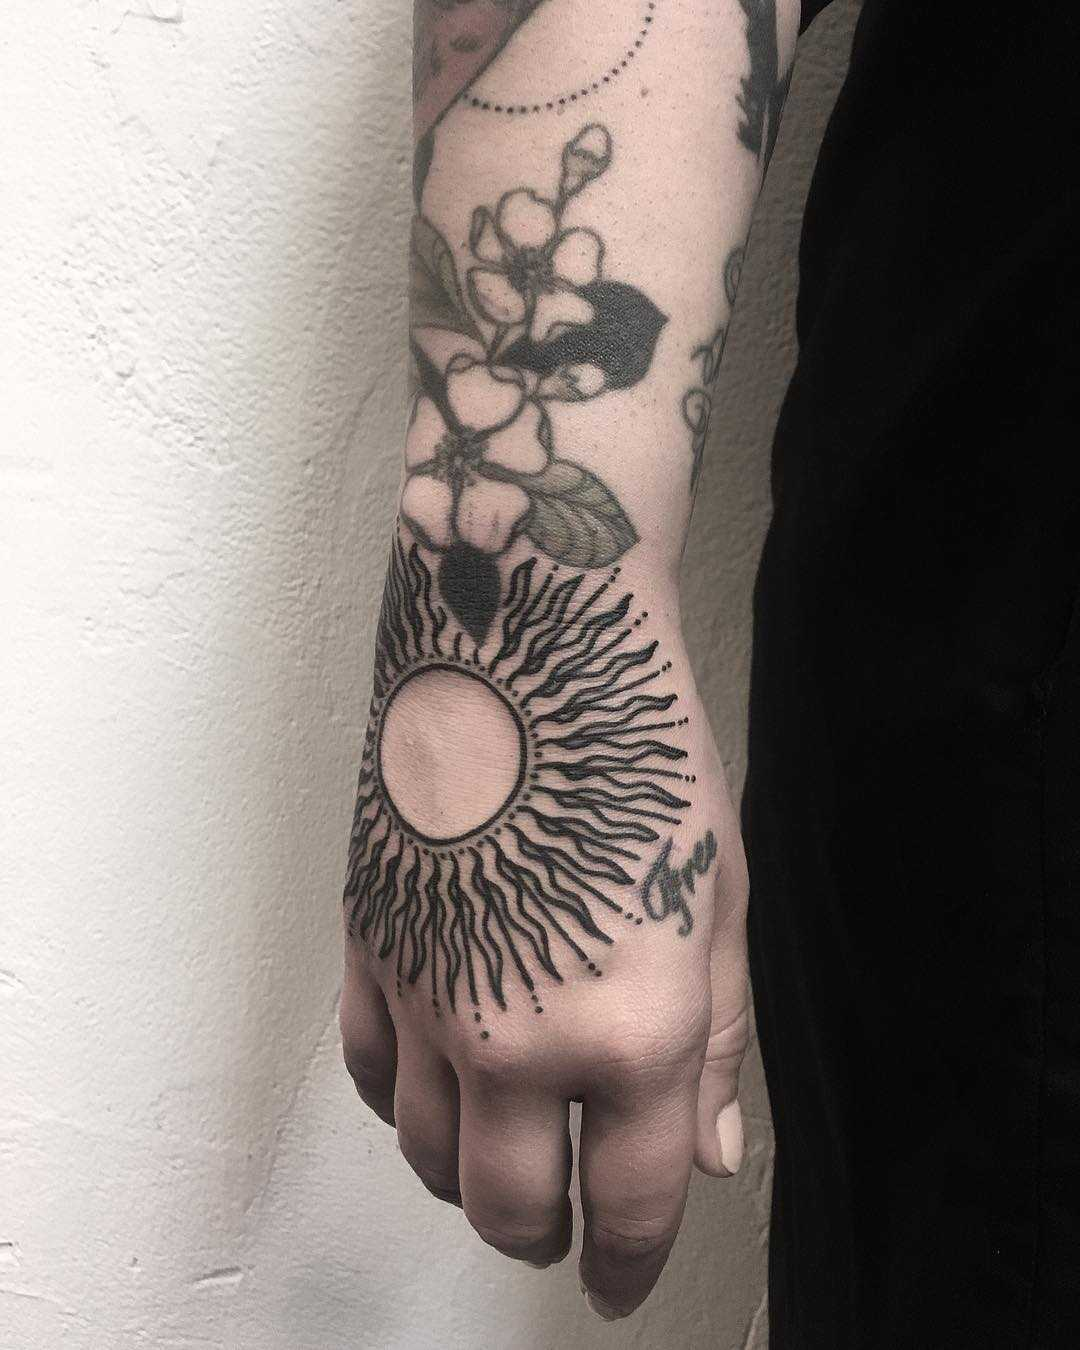 Stylized sun by tattooist Spence @zz tattoo